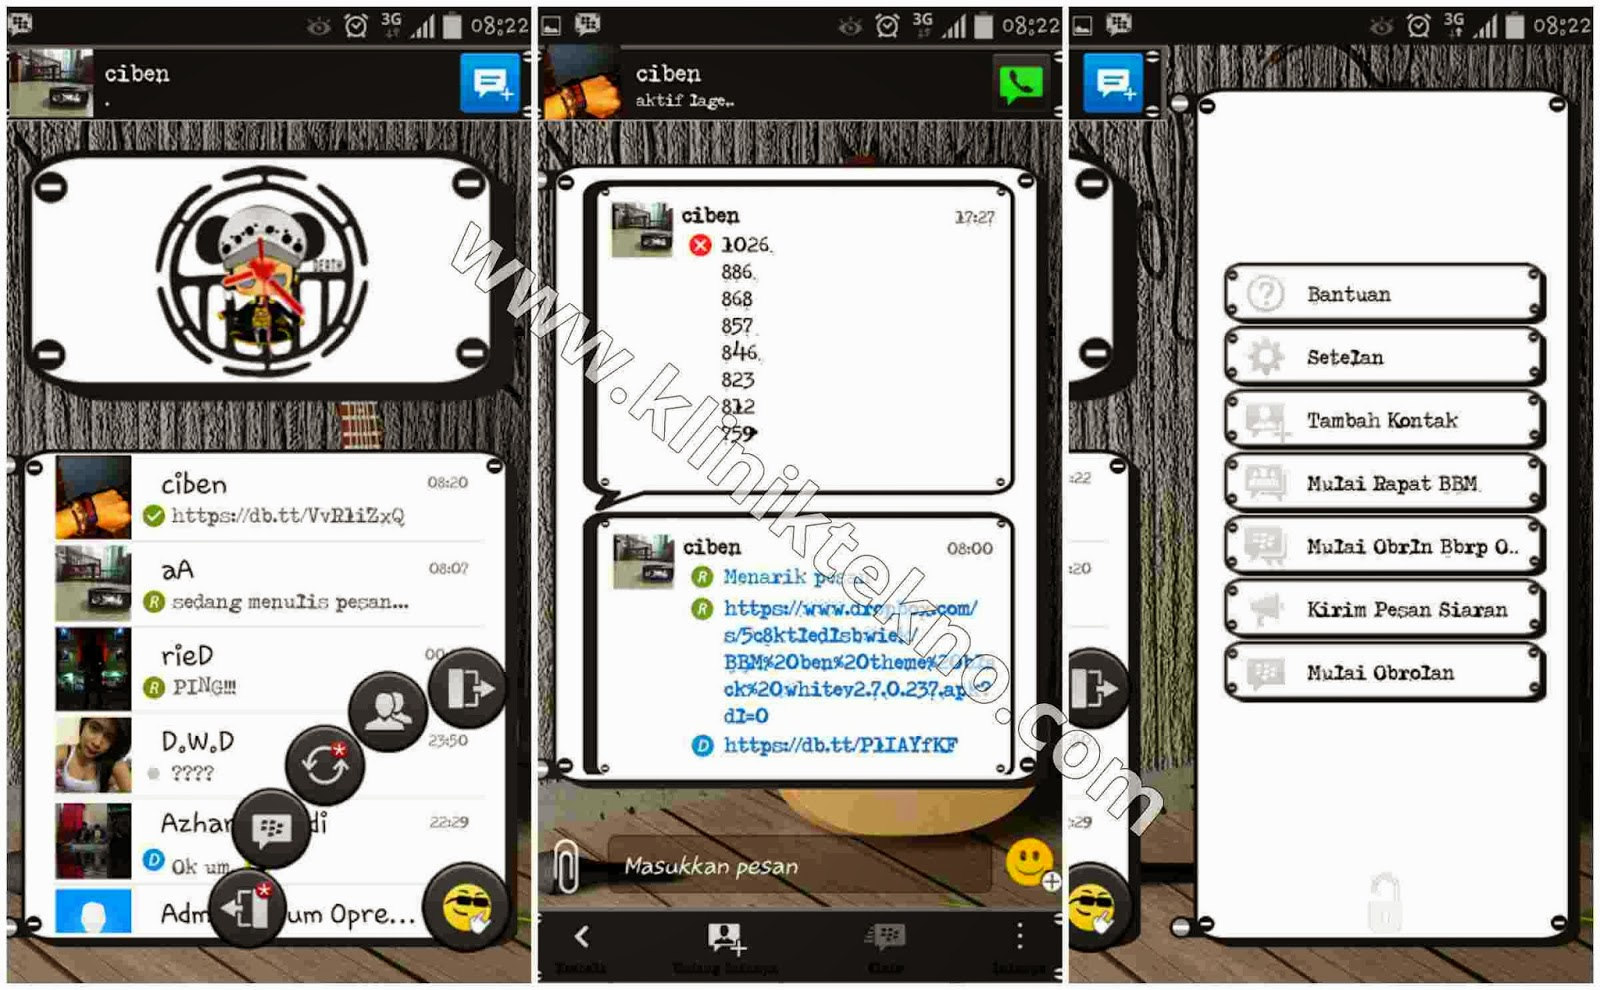 Download BBM Theme Black White v2.7.0.23 terbaru 2015